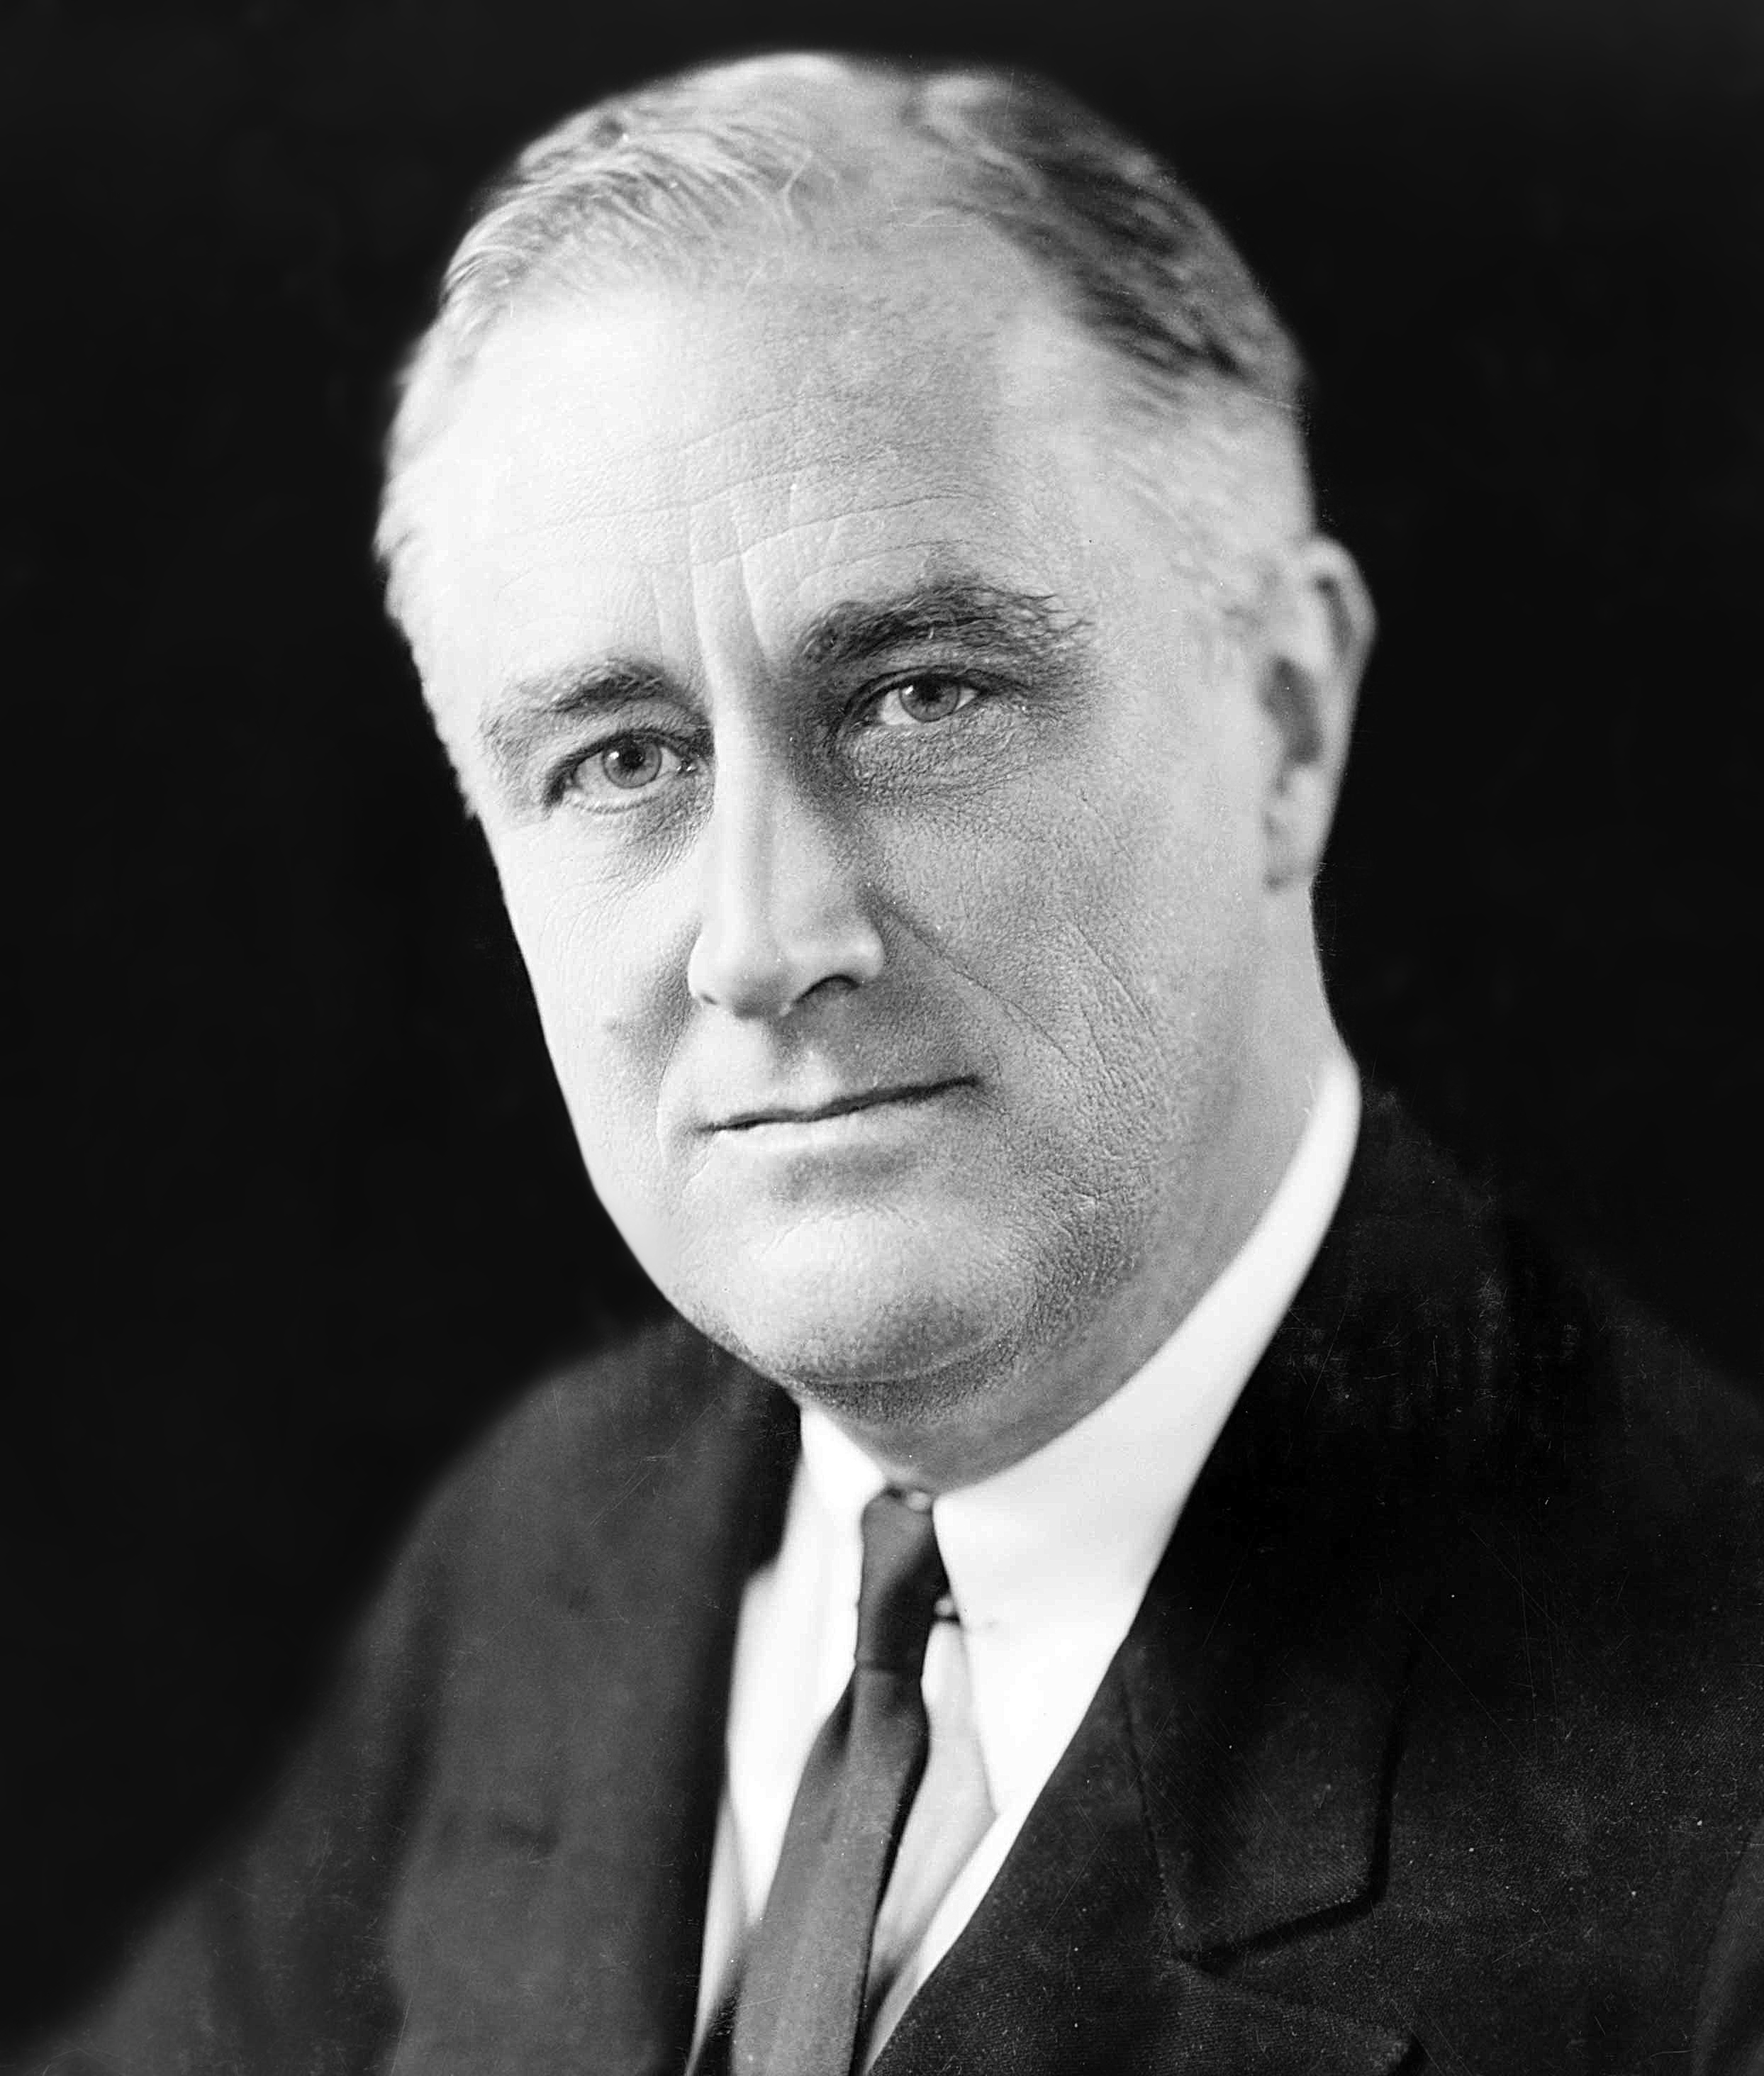 Description FDR in 1933.jpg